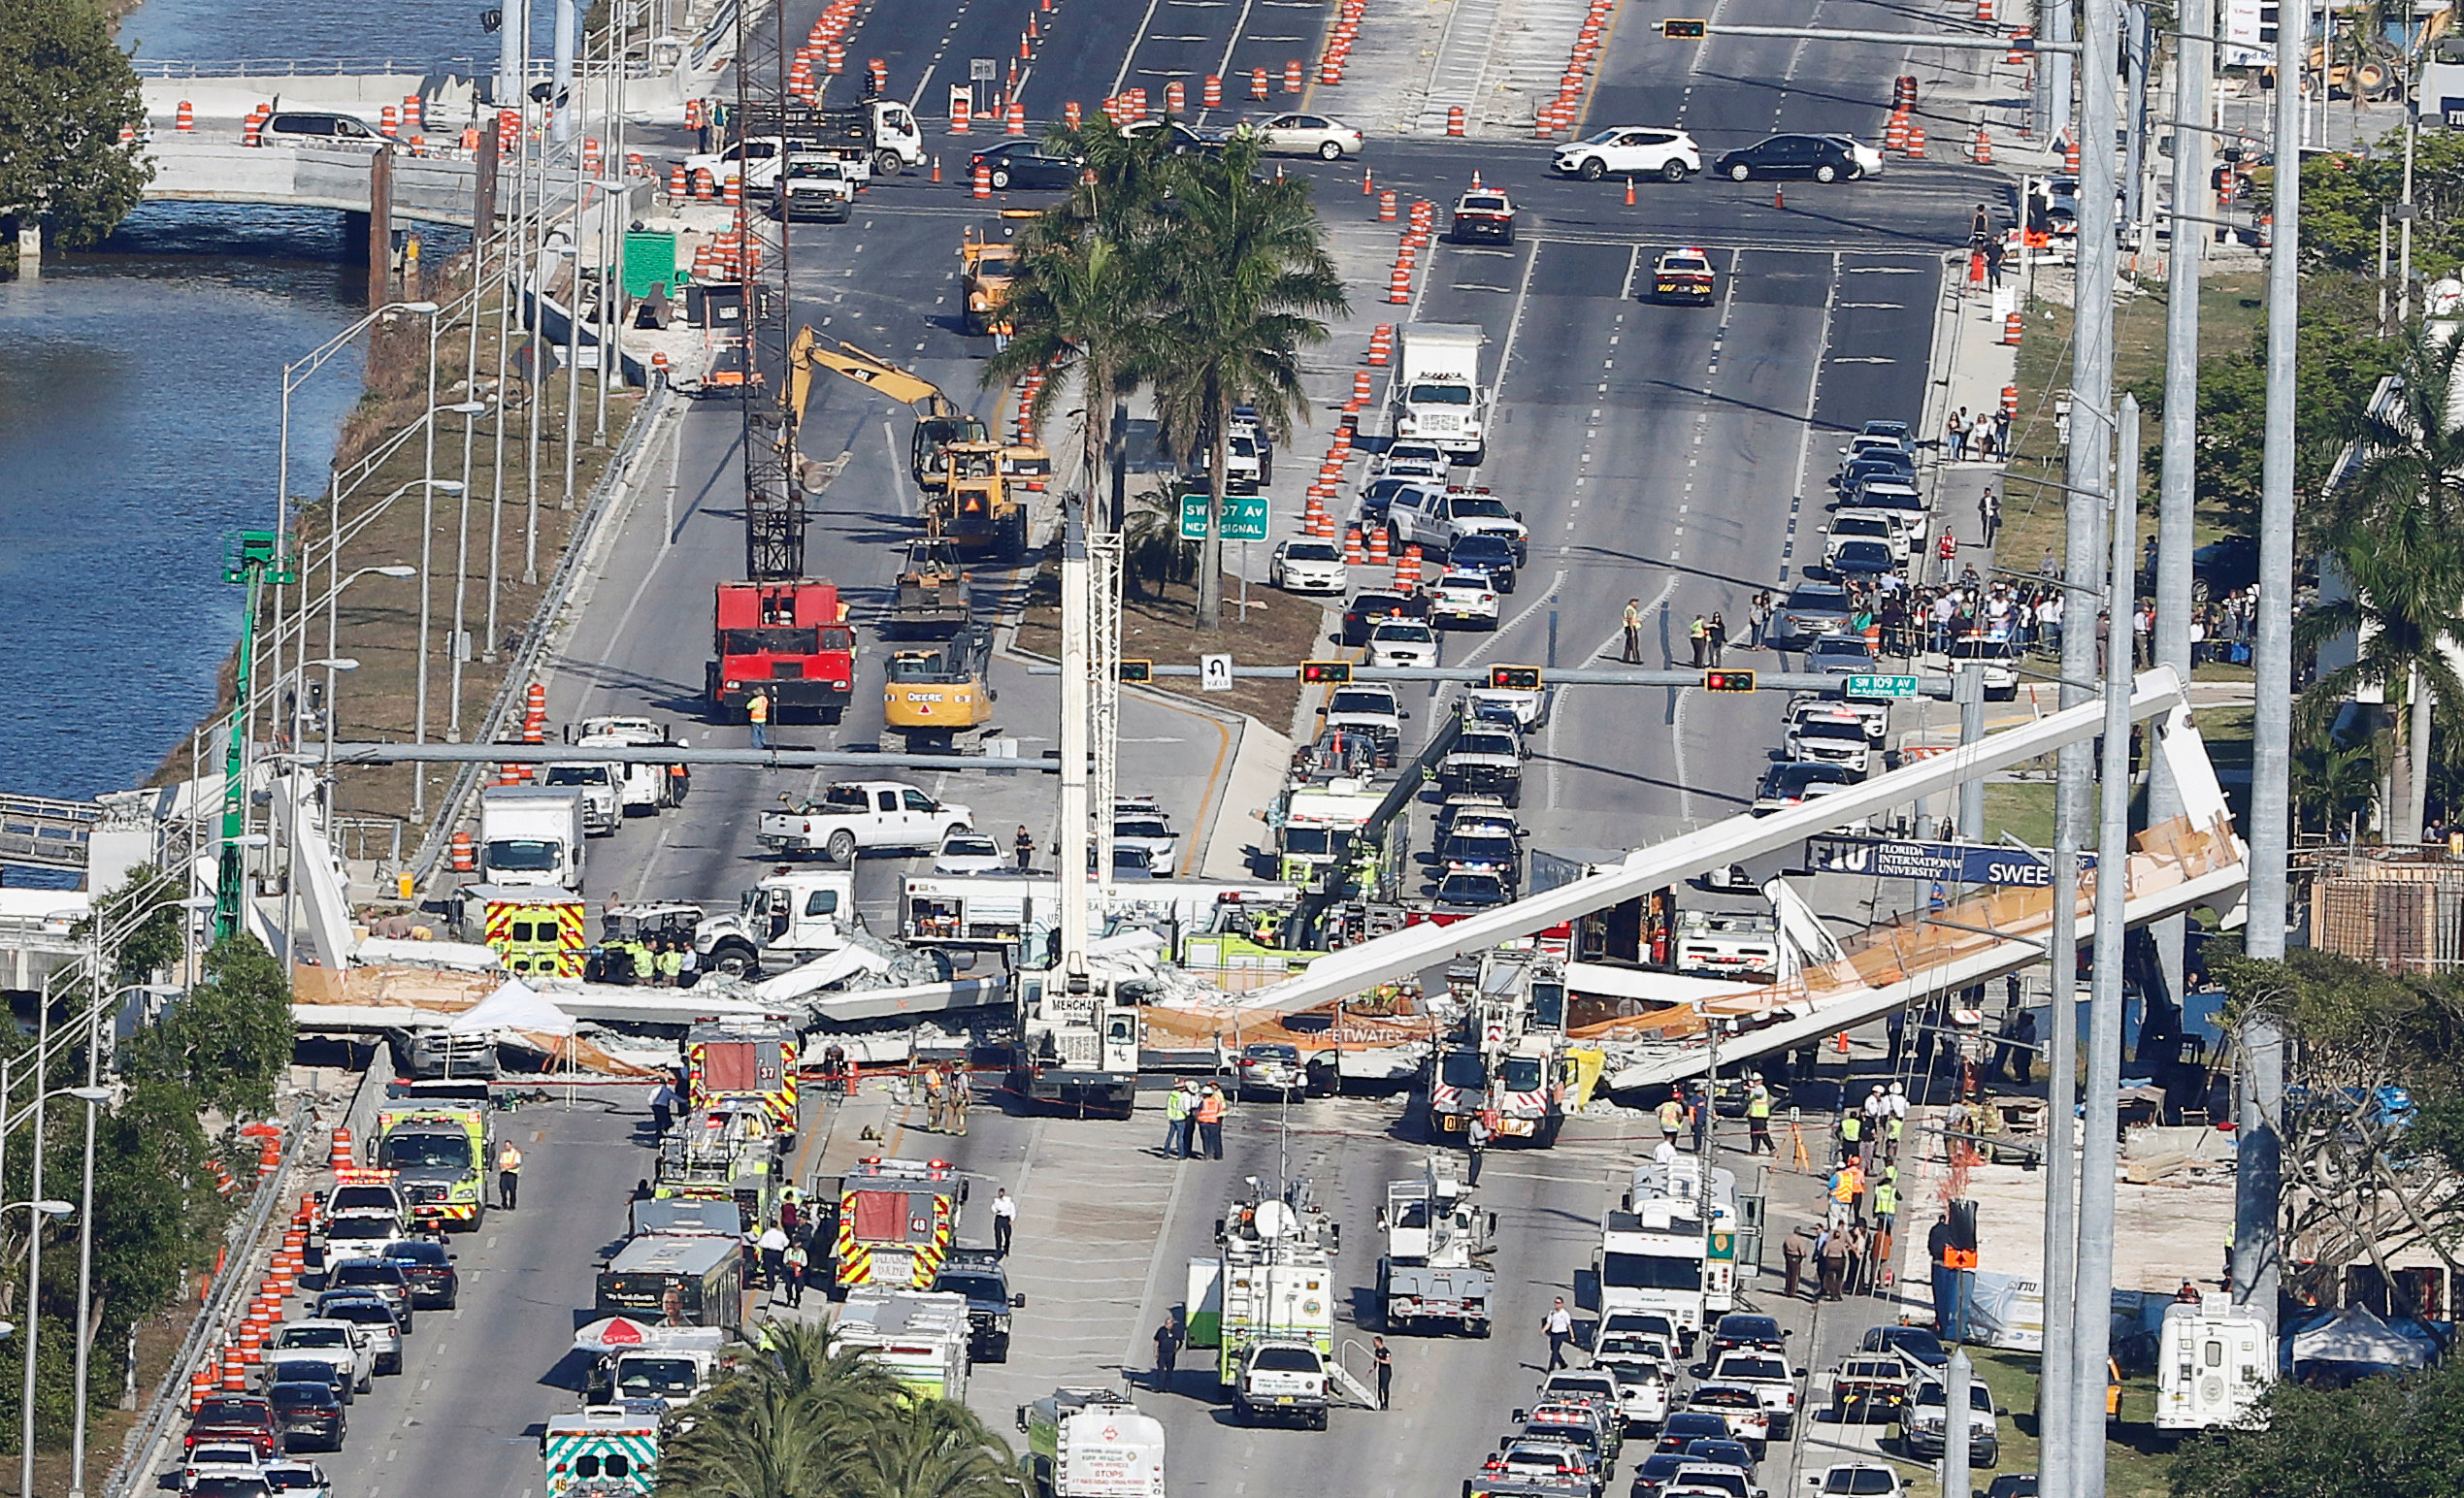 Officials identify 4 victims killed in Miami bridge collapse